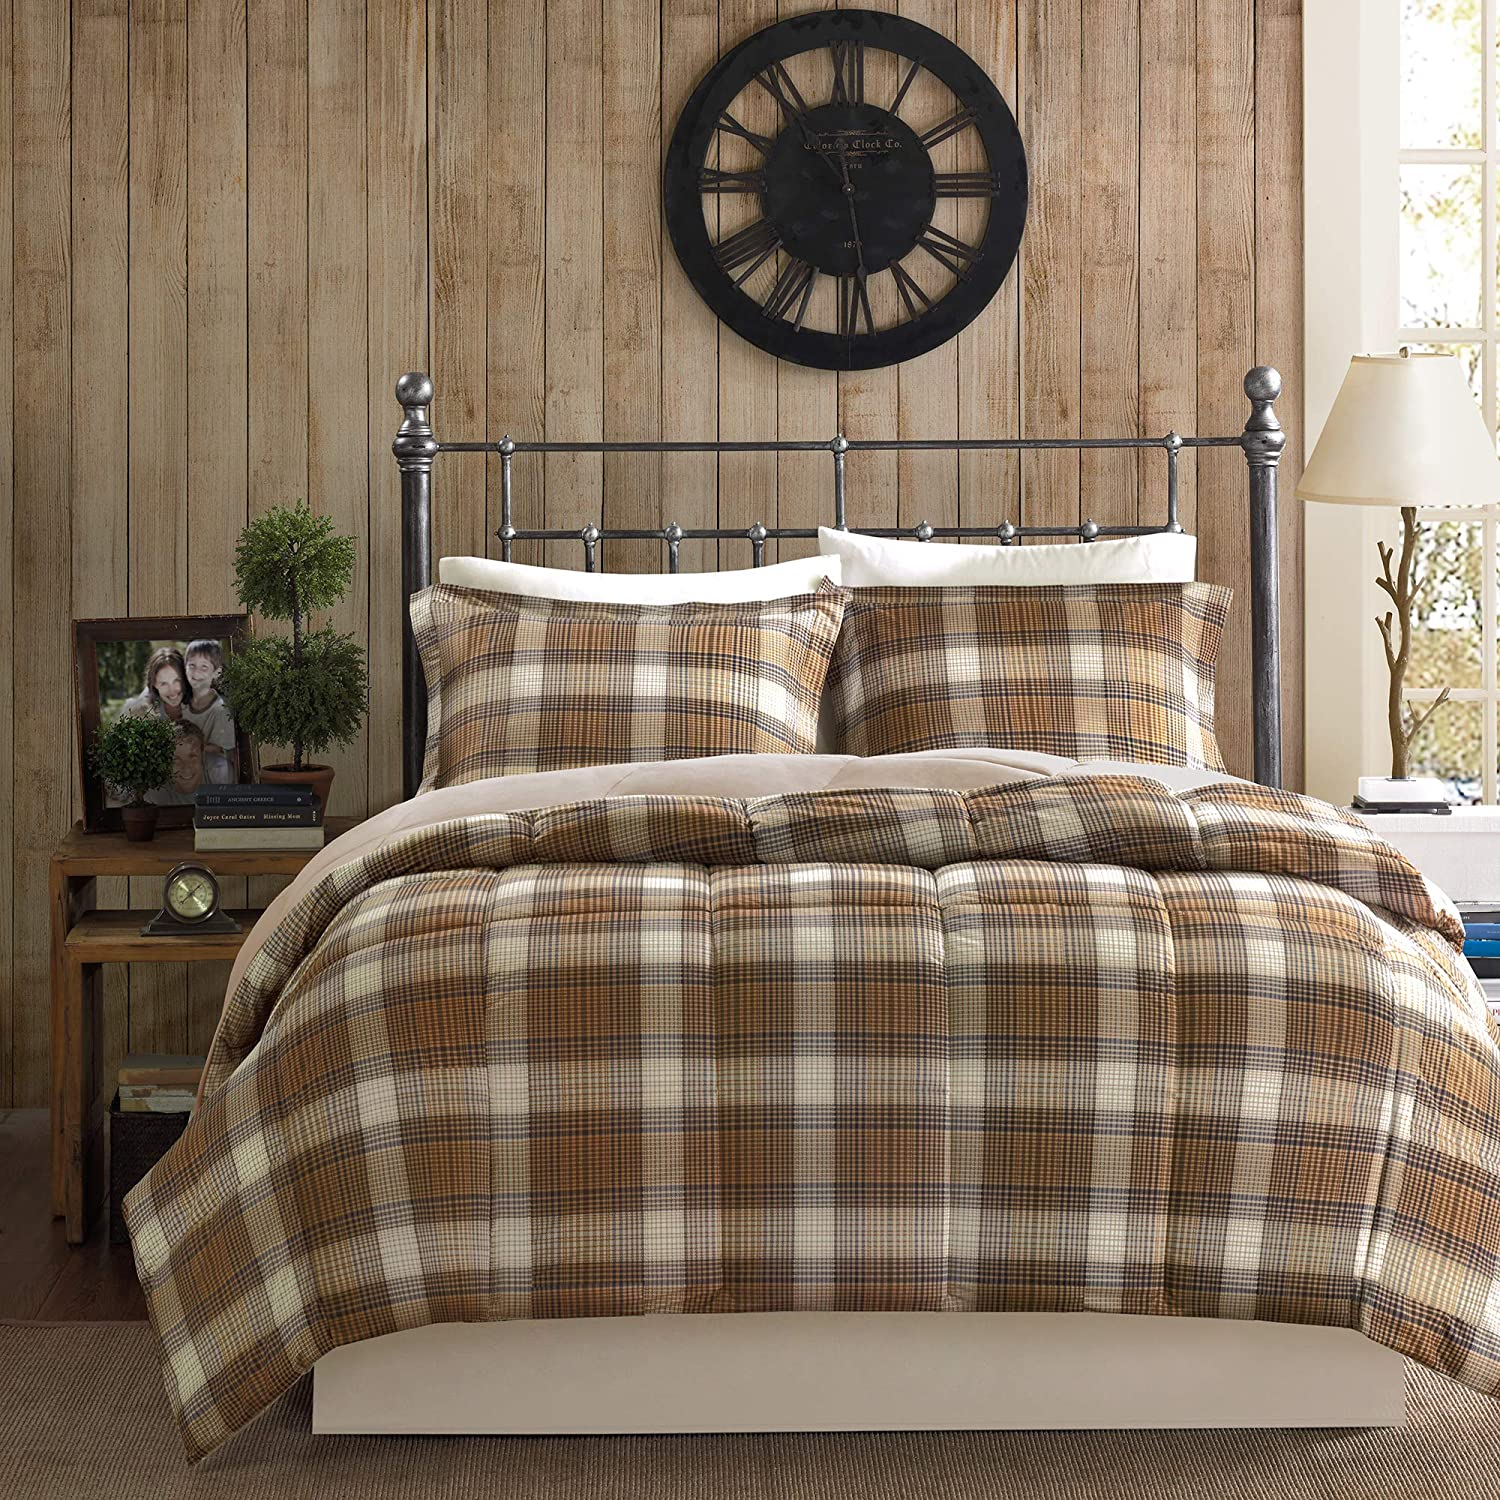 Woolrich Lumberjack King Size Bed Comforter Set - Brown, Khaki , Farmouse, Rustic Plaid – 3 Pieces Bedding Sets – Softspun Flannel Bedroom Comforters